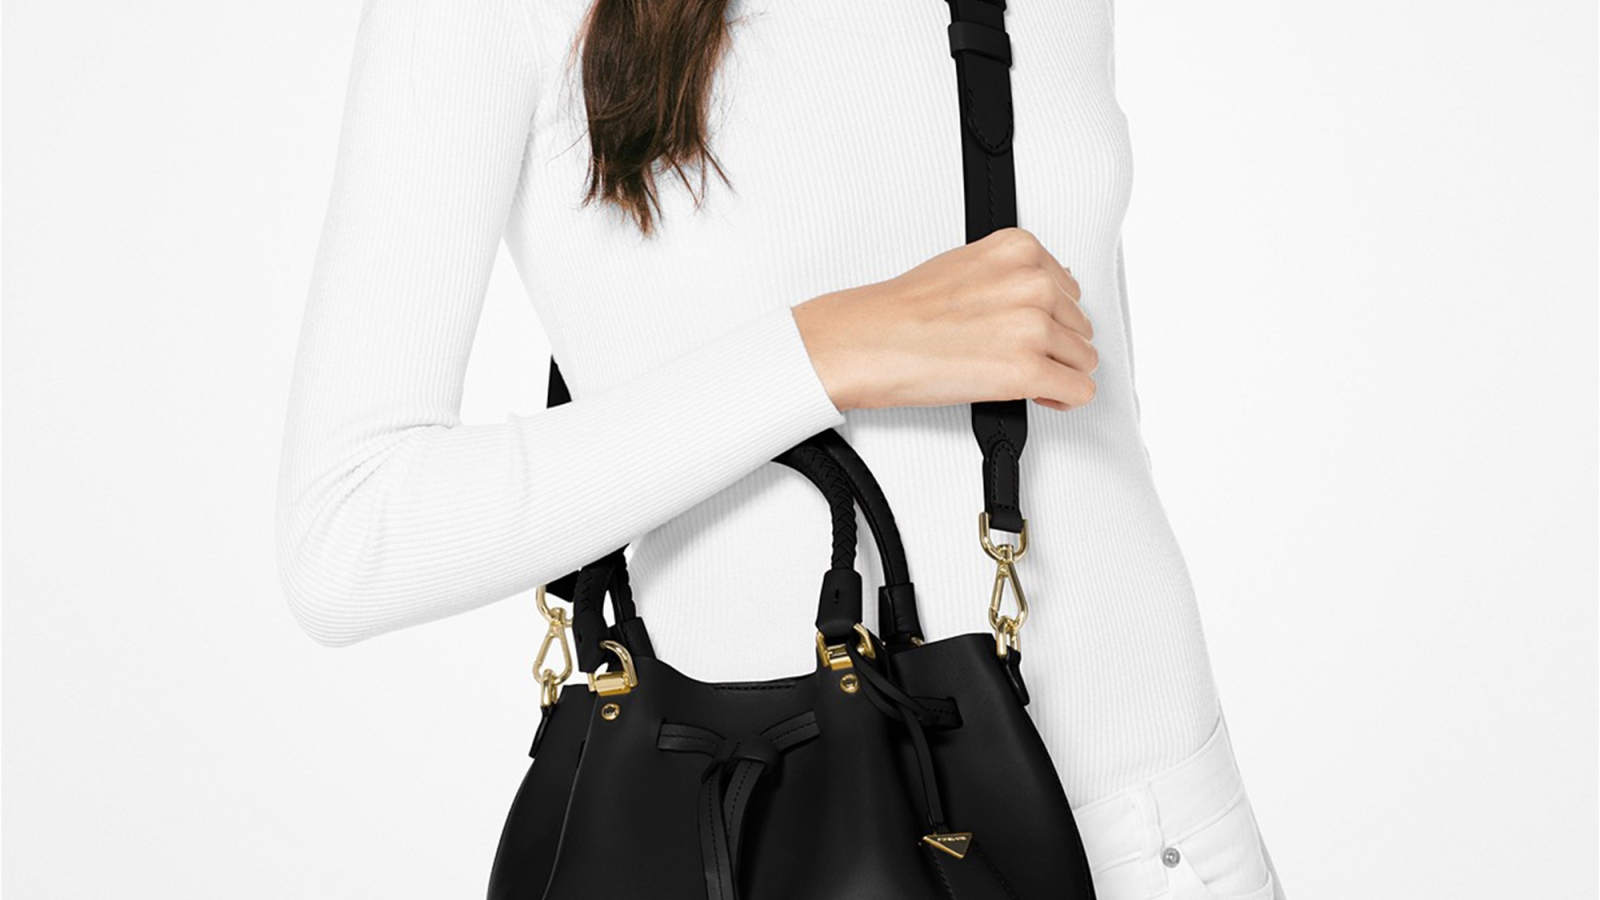 67e375104a97a9 This Michael Kors Bucket Bag Is $150 Off at Macy's Right Now